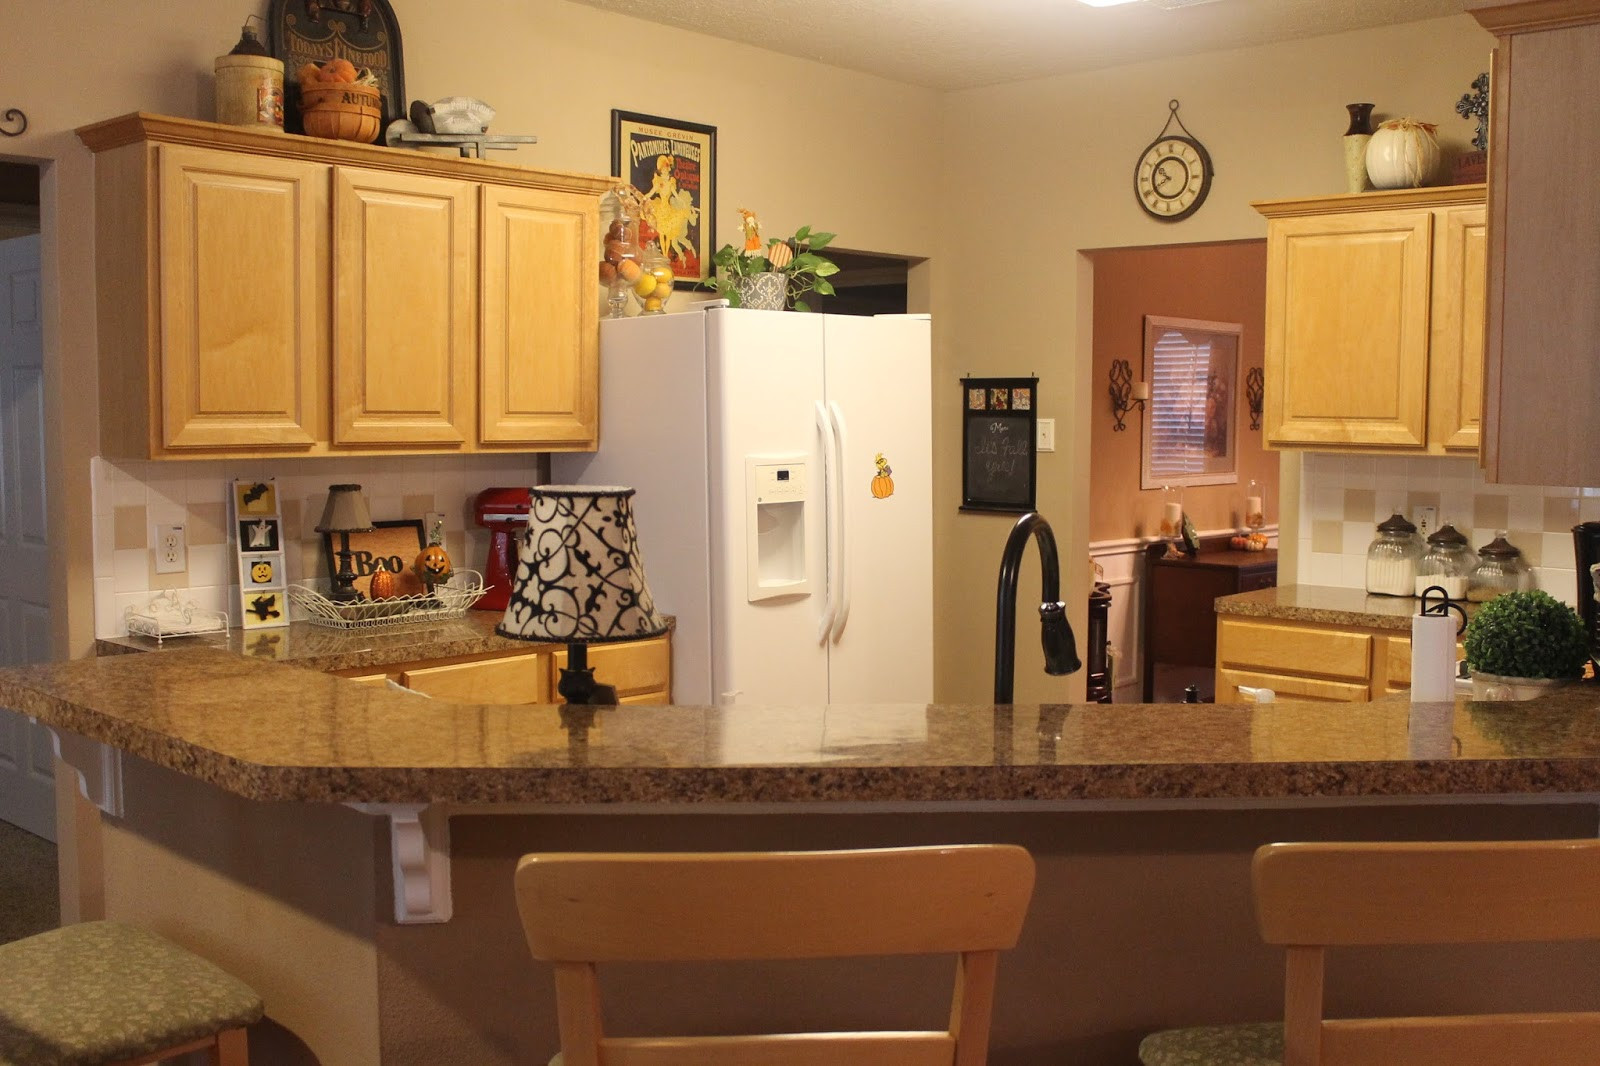 Best ideas about Kitchen Decor Store . Save or Pin Texas Decor Fall Decor Part 3 The Kitchen Now.